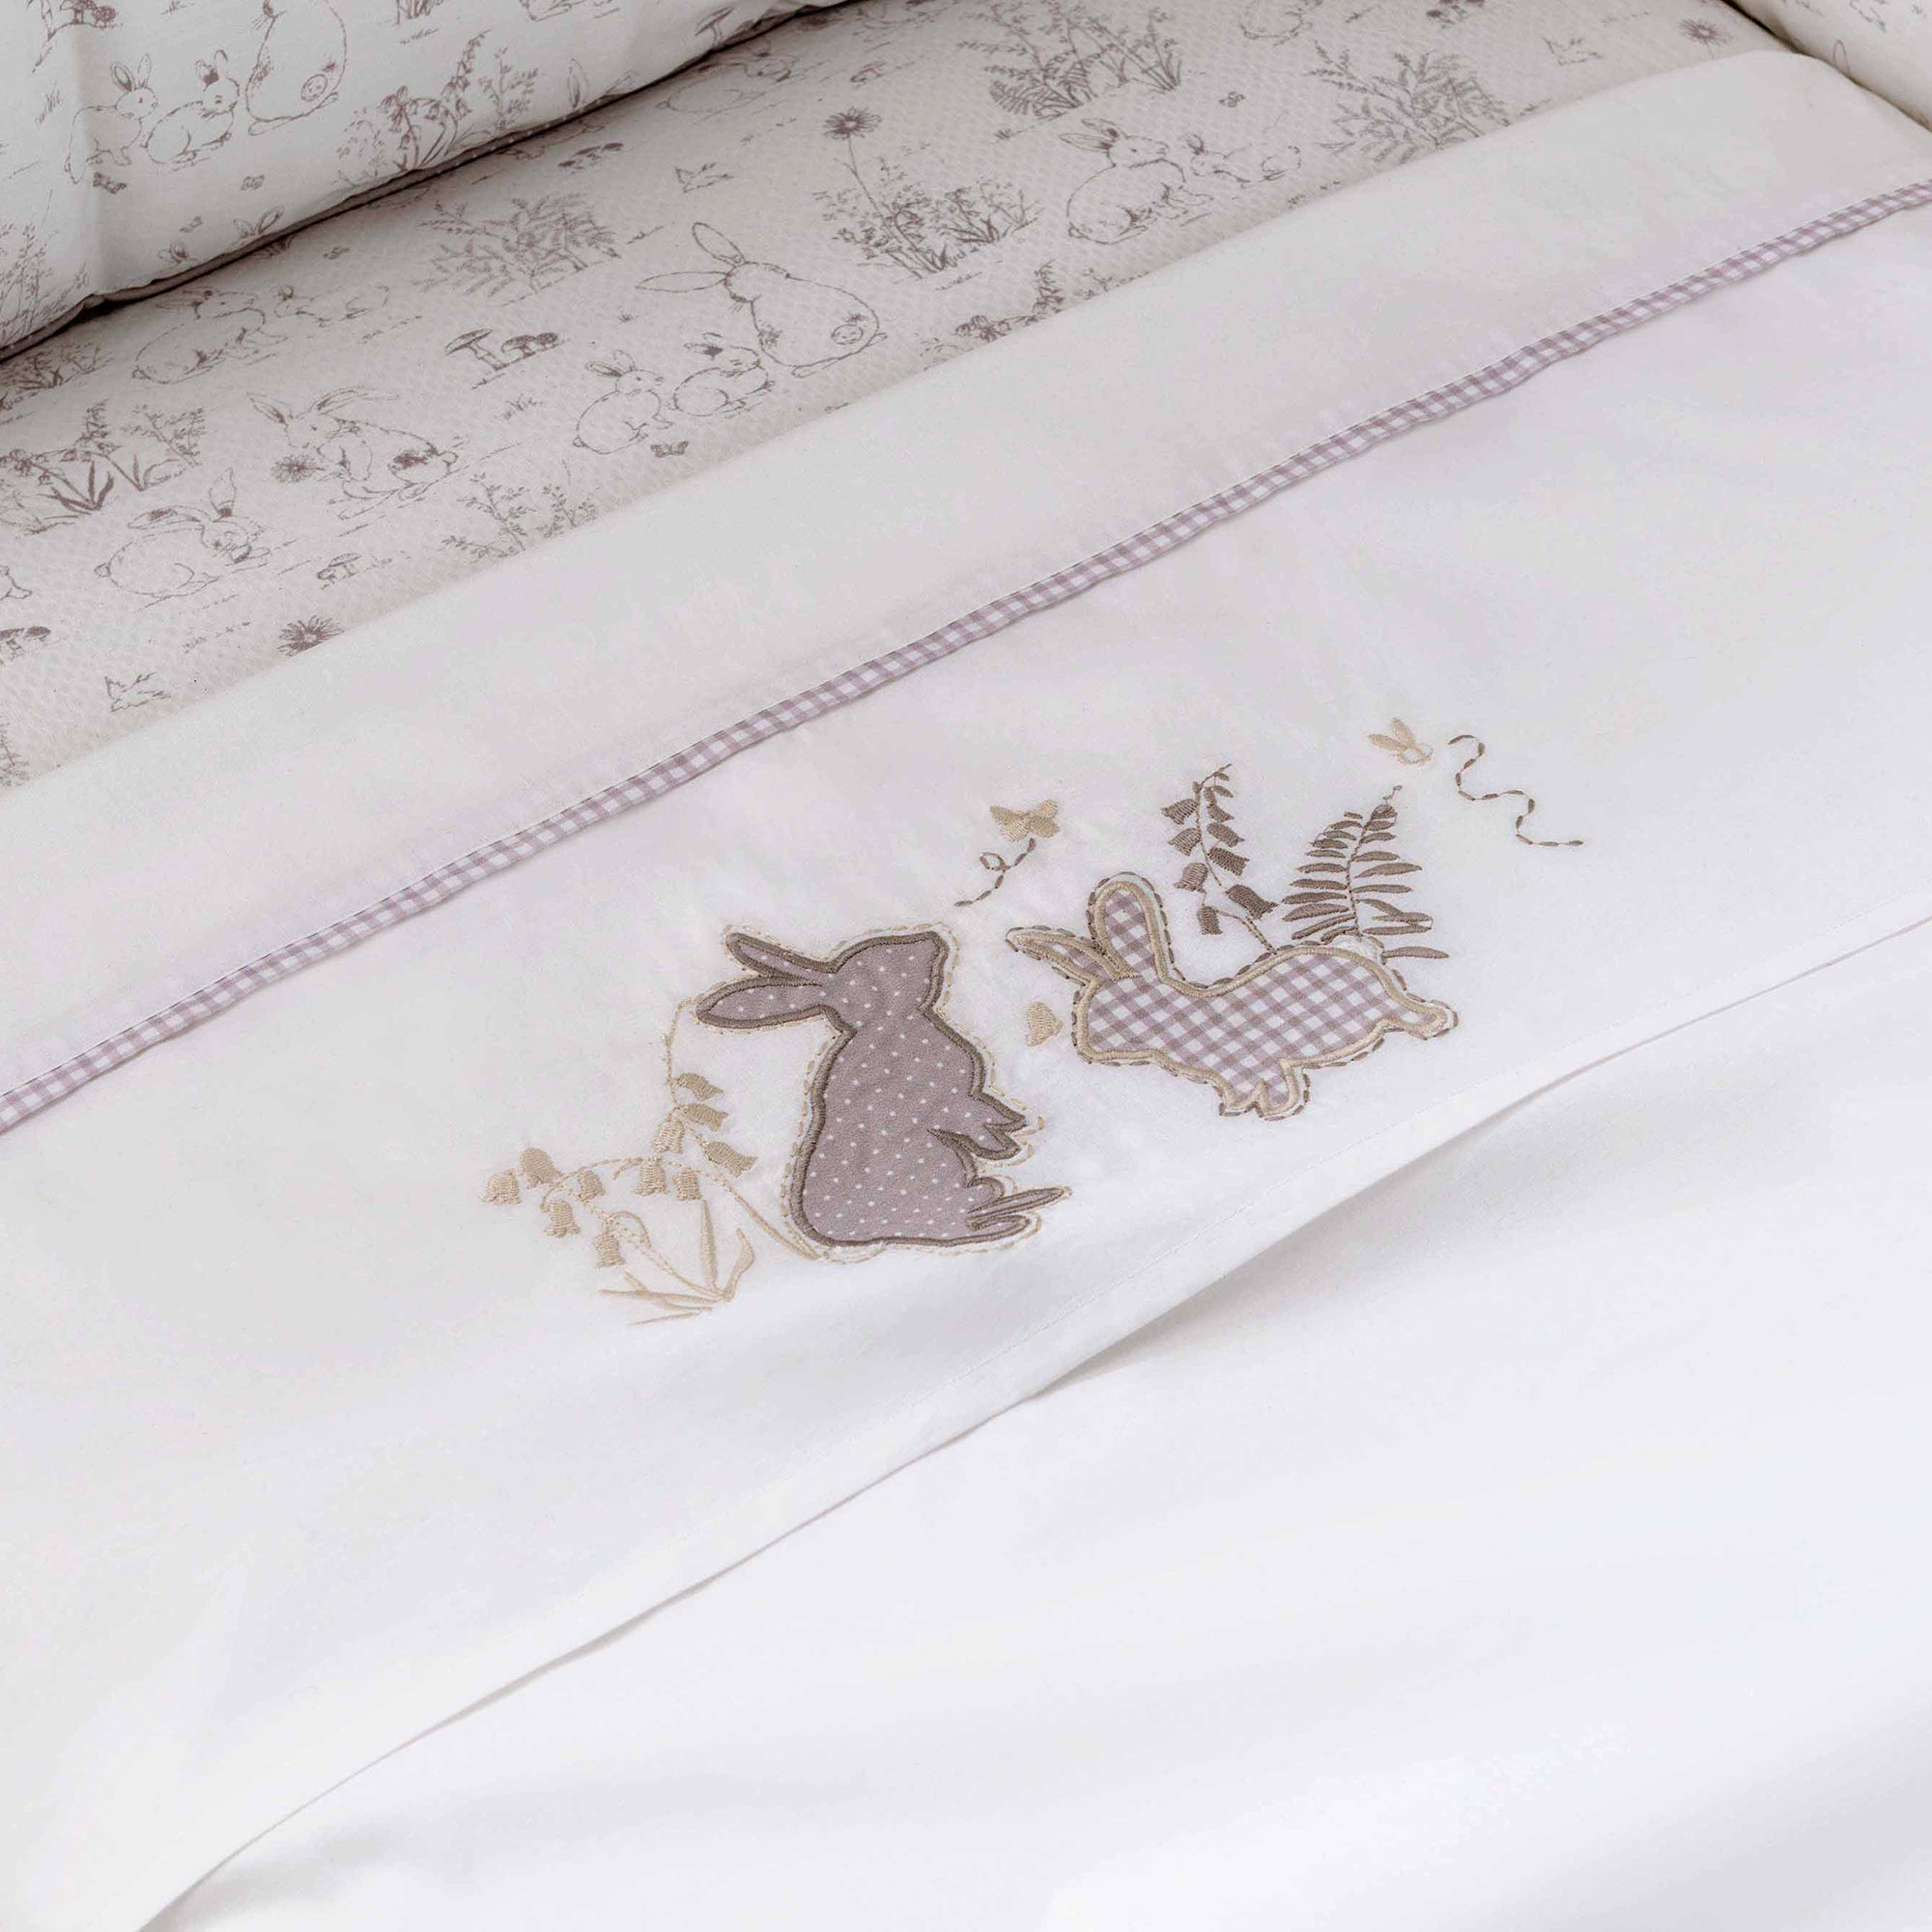 Dorma White Bunny Meadow Collection Flat and Fitted Sheet Set